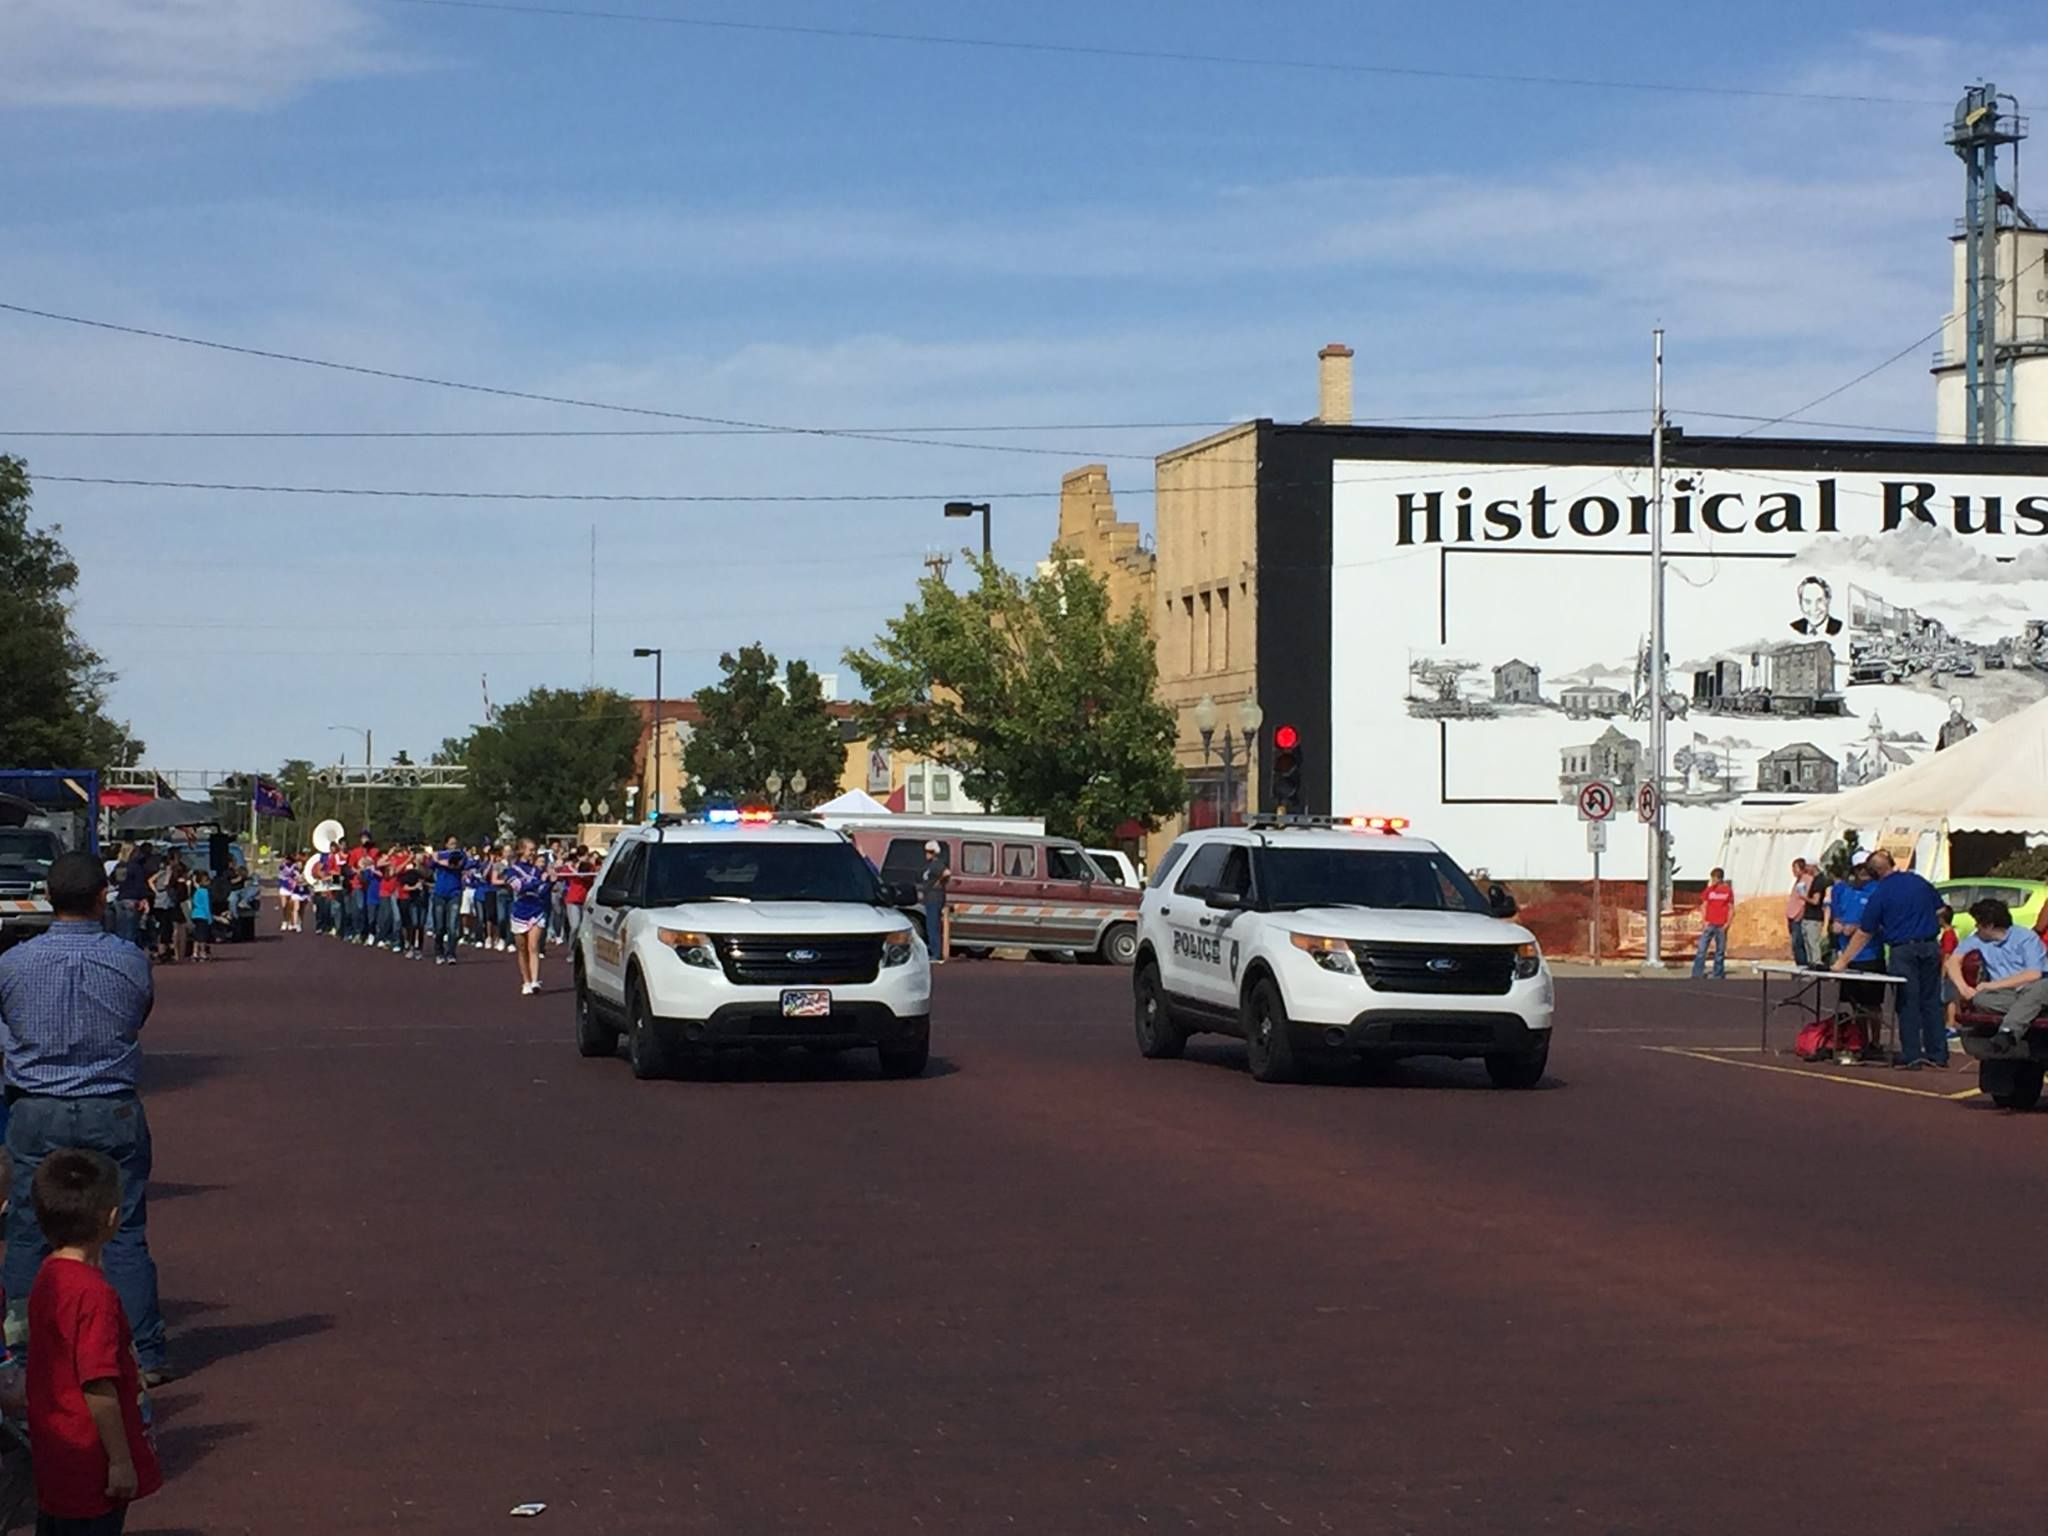 Police Vehicles in Parade